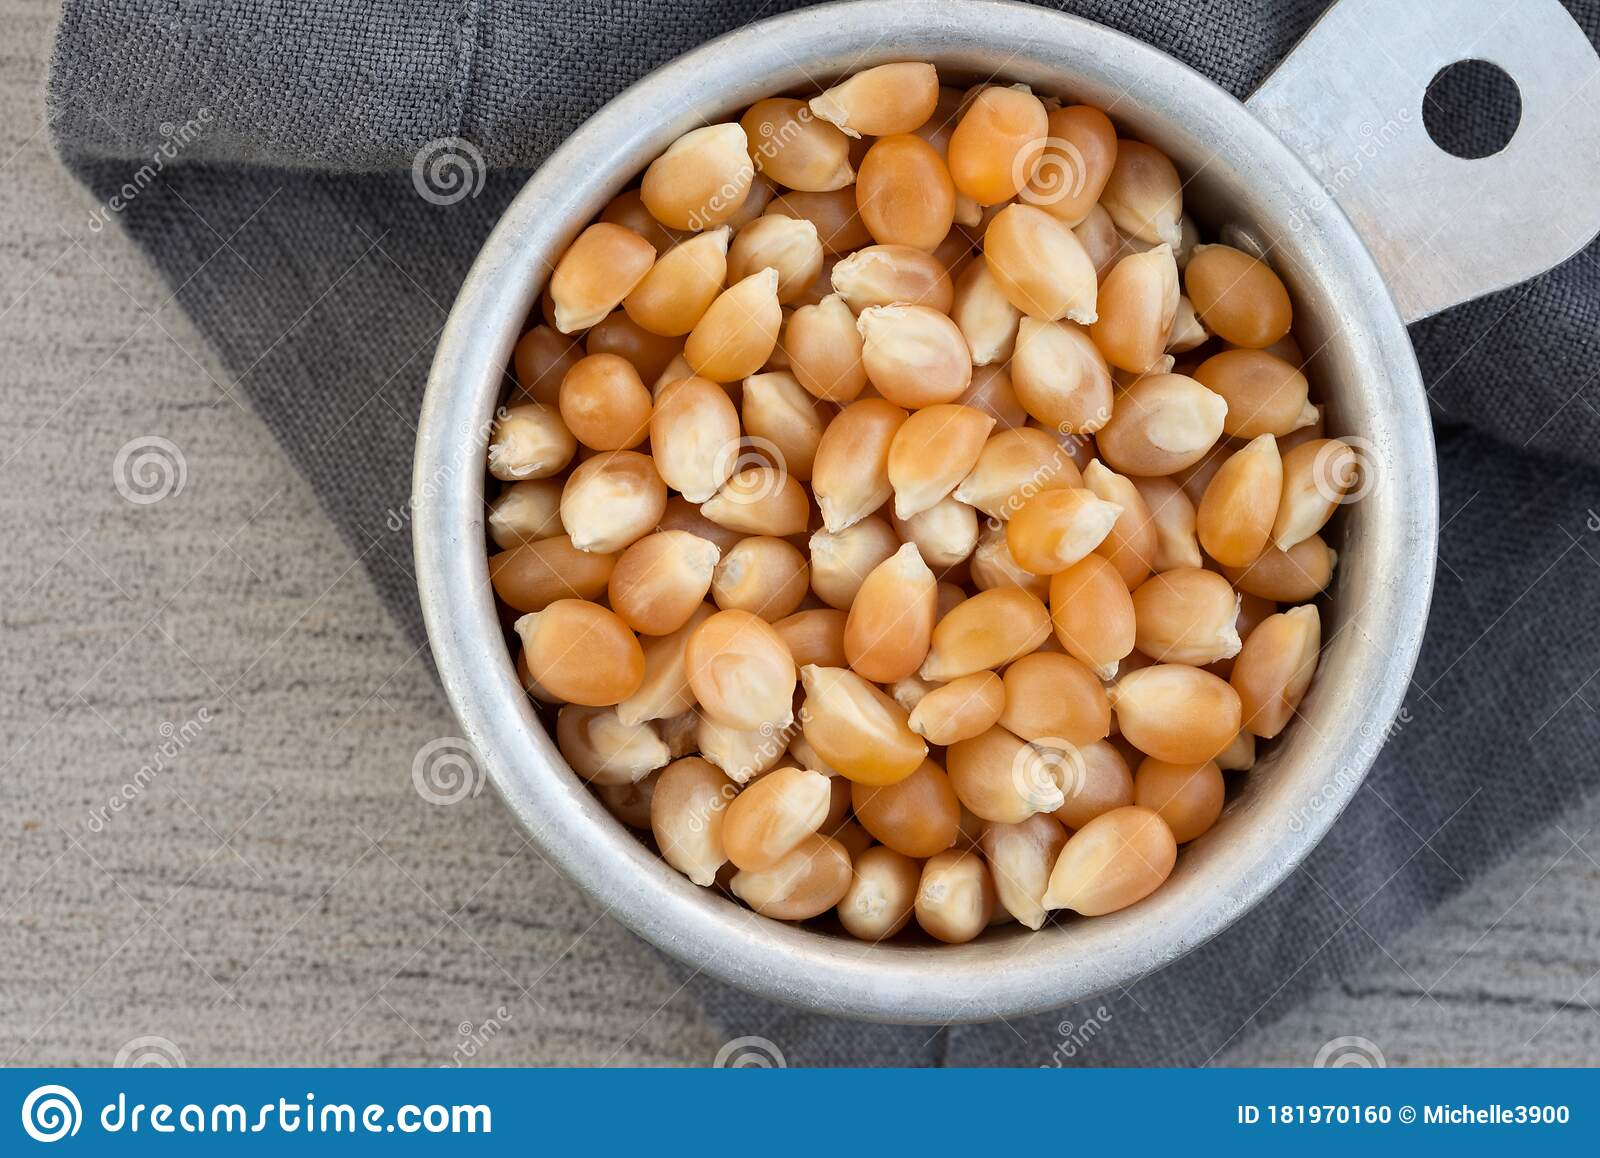 Popcorn Kernels In A Measuring Cup Stock Photo - Image of ...